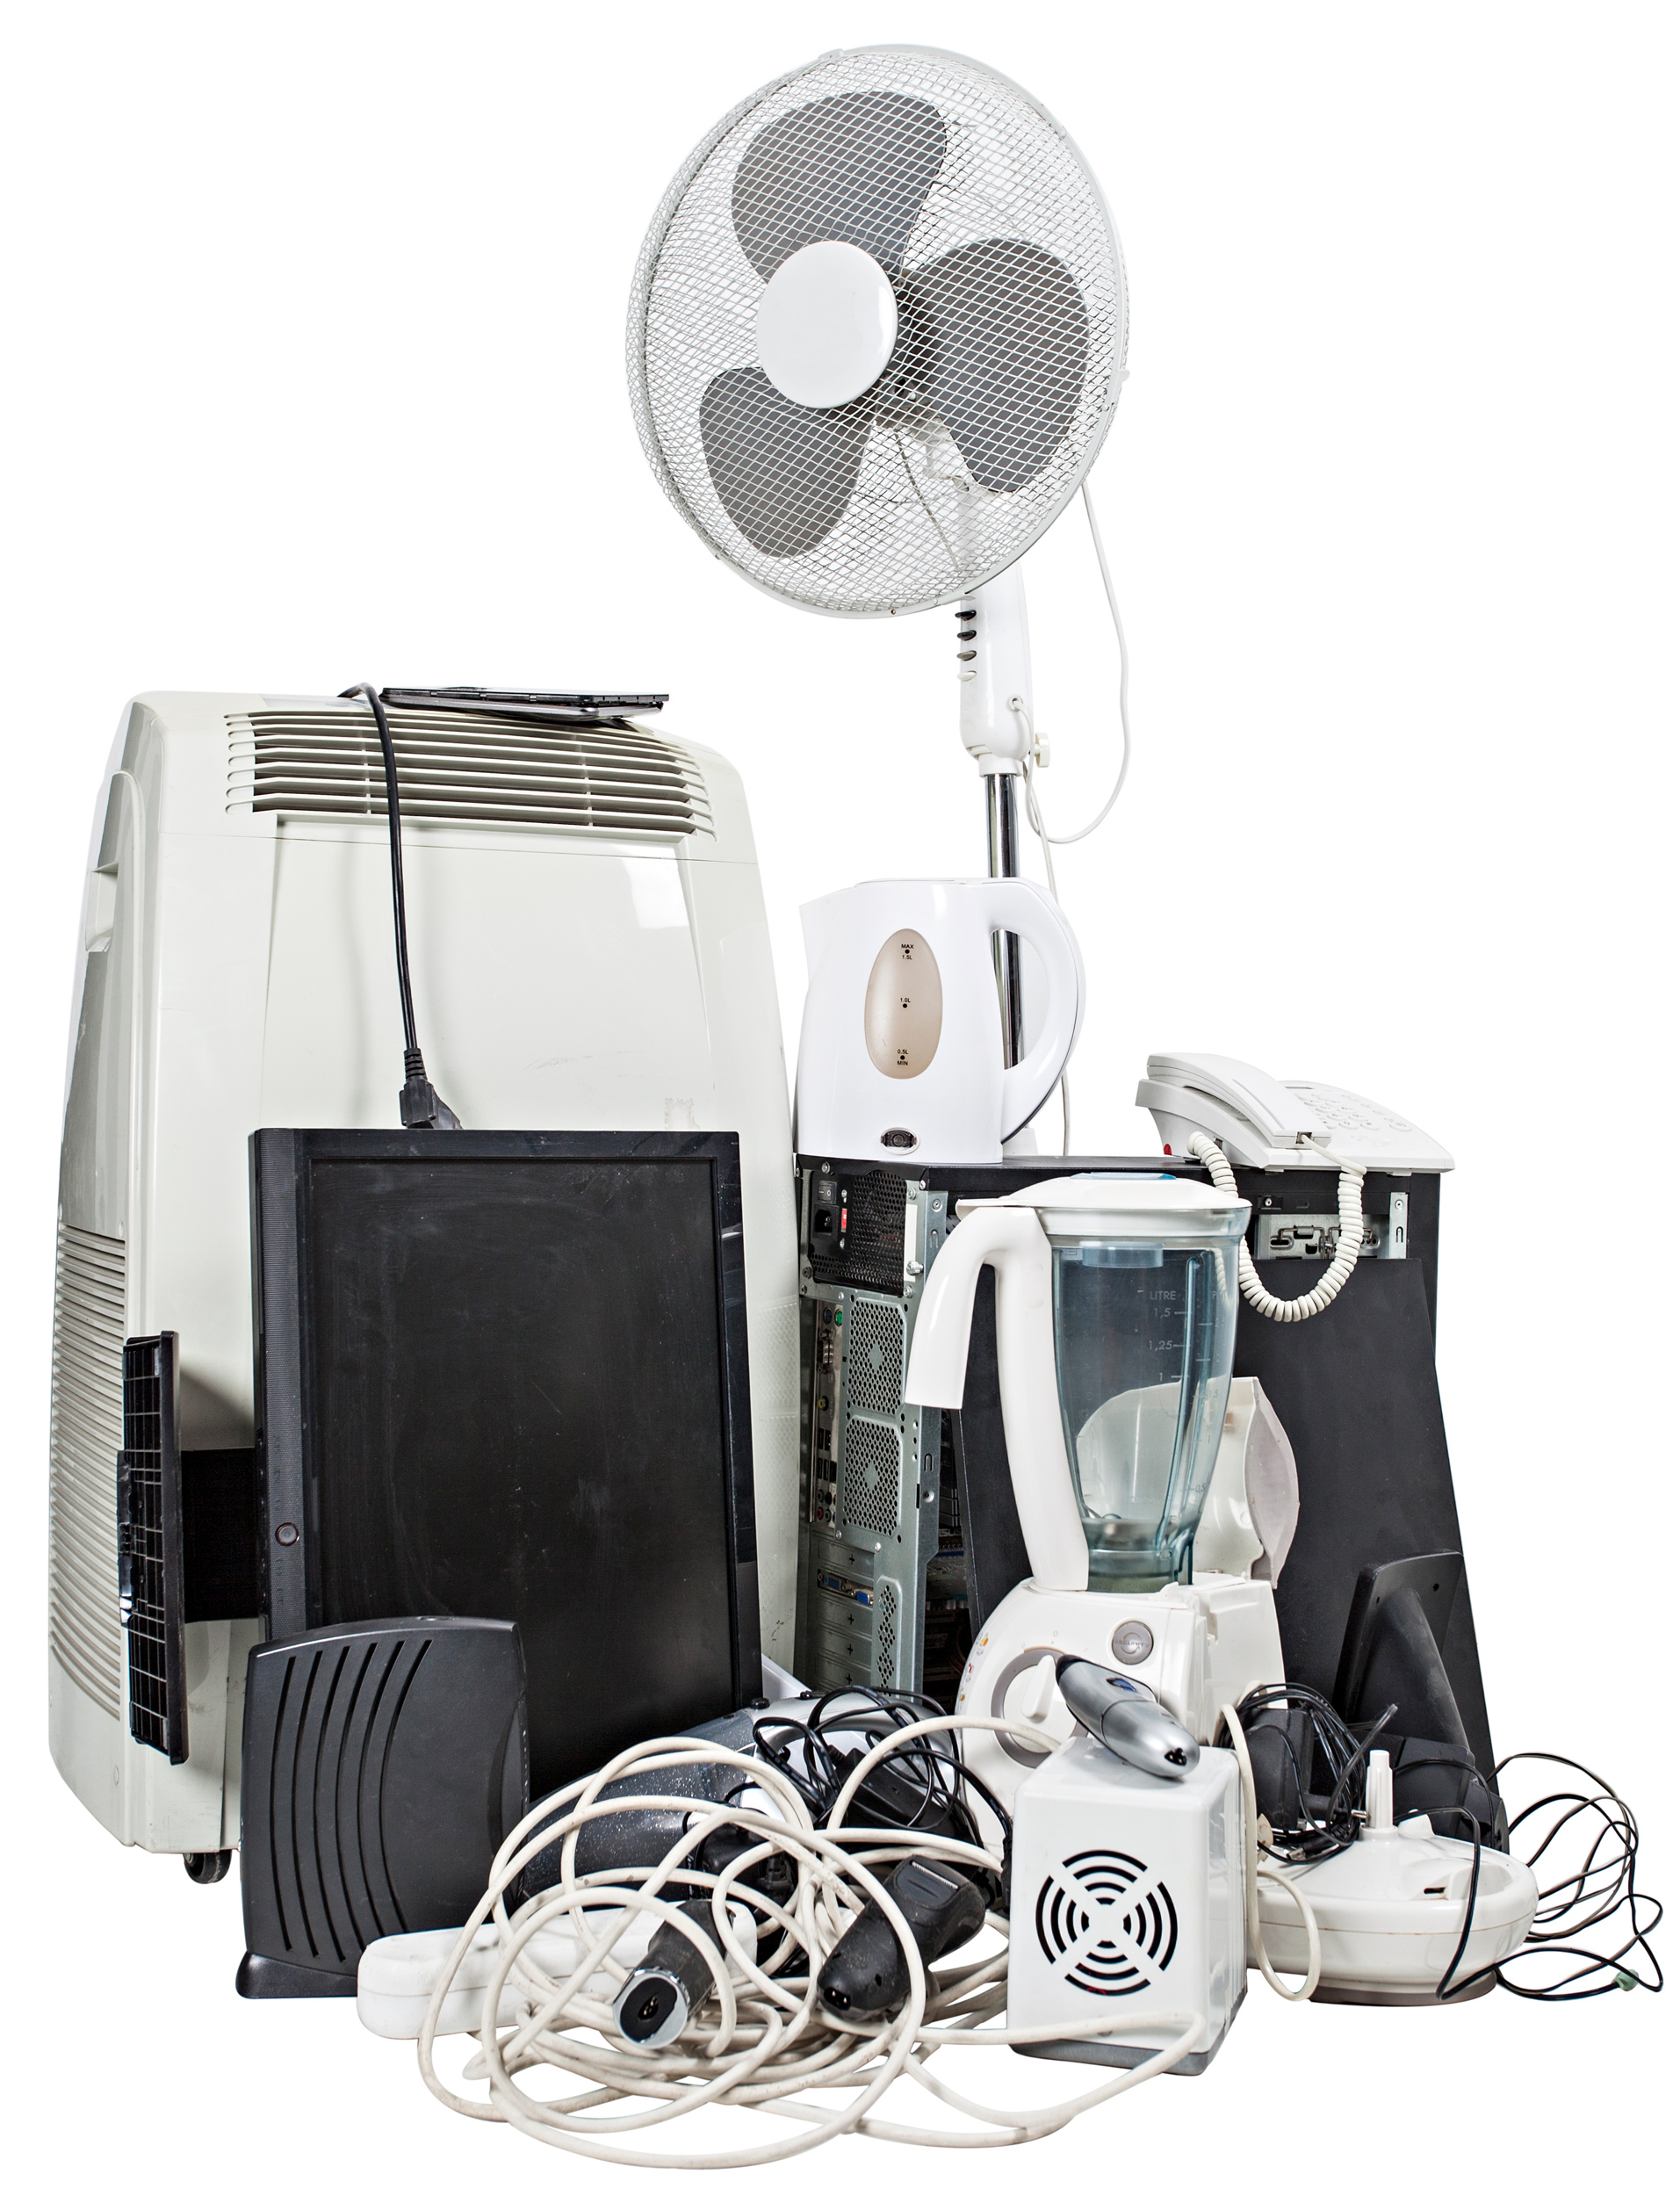 E- scrap with electrical appliances such as fans, air conditioners, mixers, telephone and kettle and TV